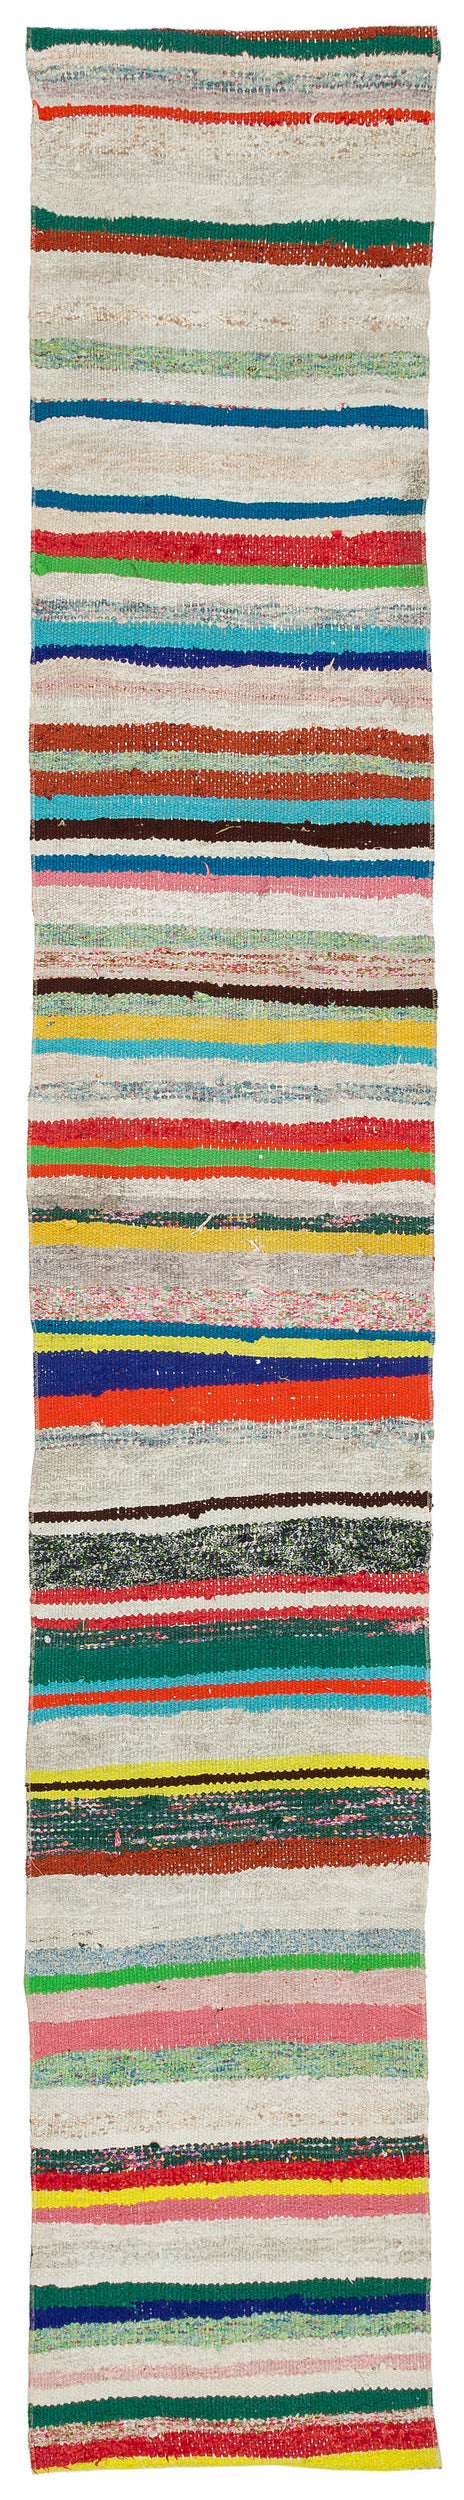 Chaput Over Dyed Kilim Rug 1'8'' x 10'2'' ft 52 x 310 cm